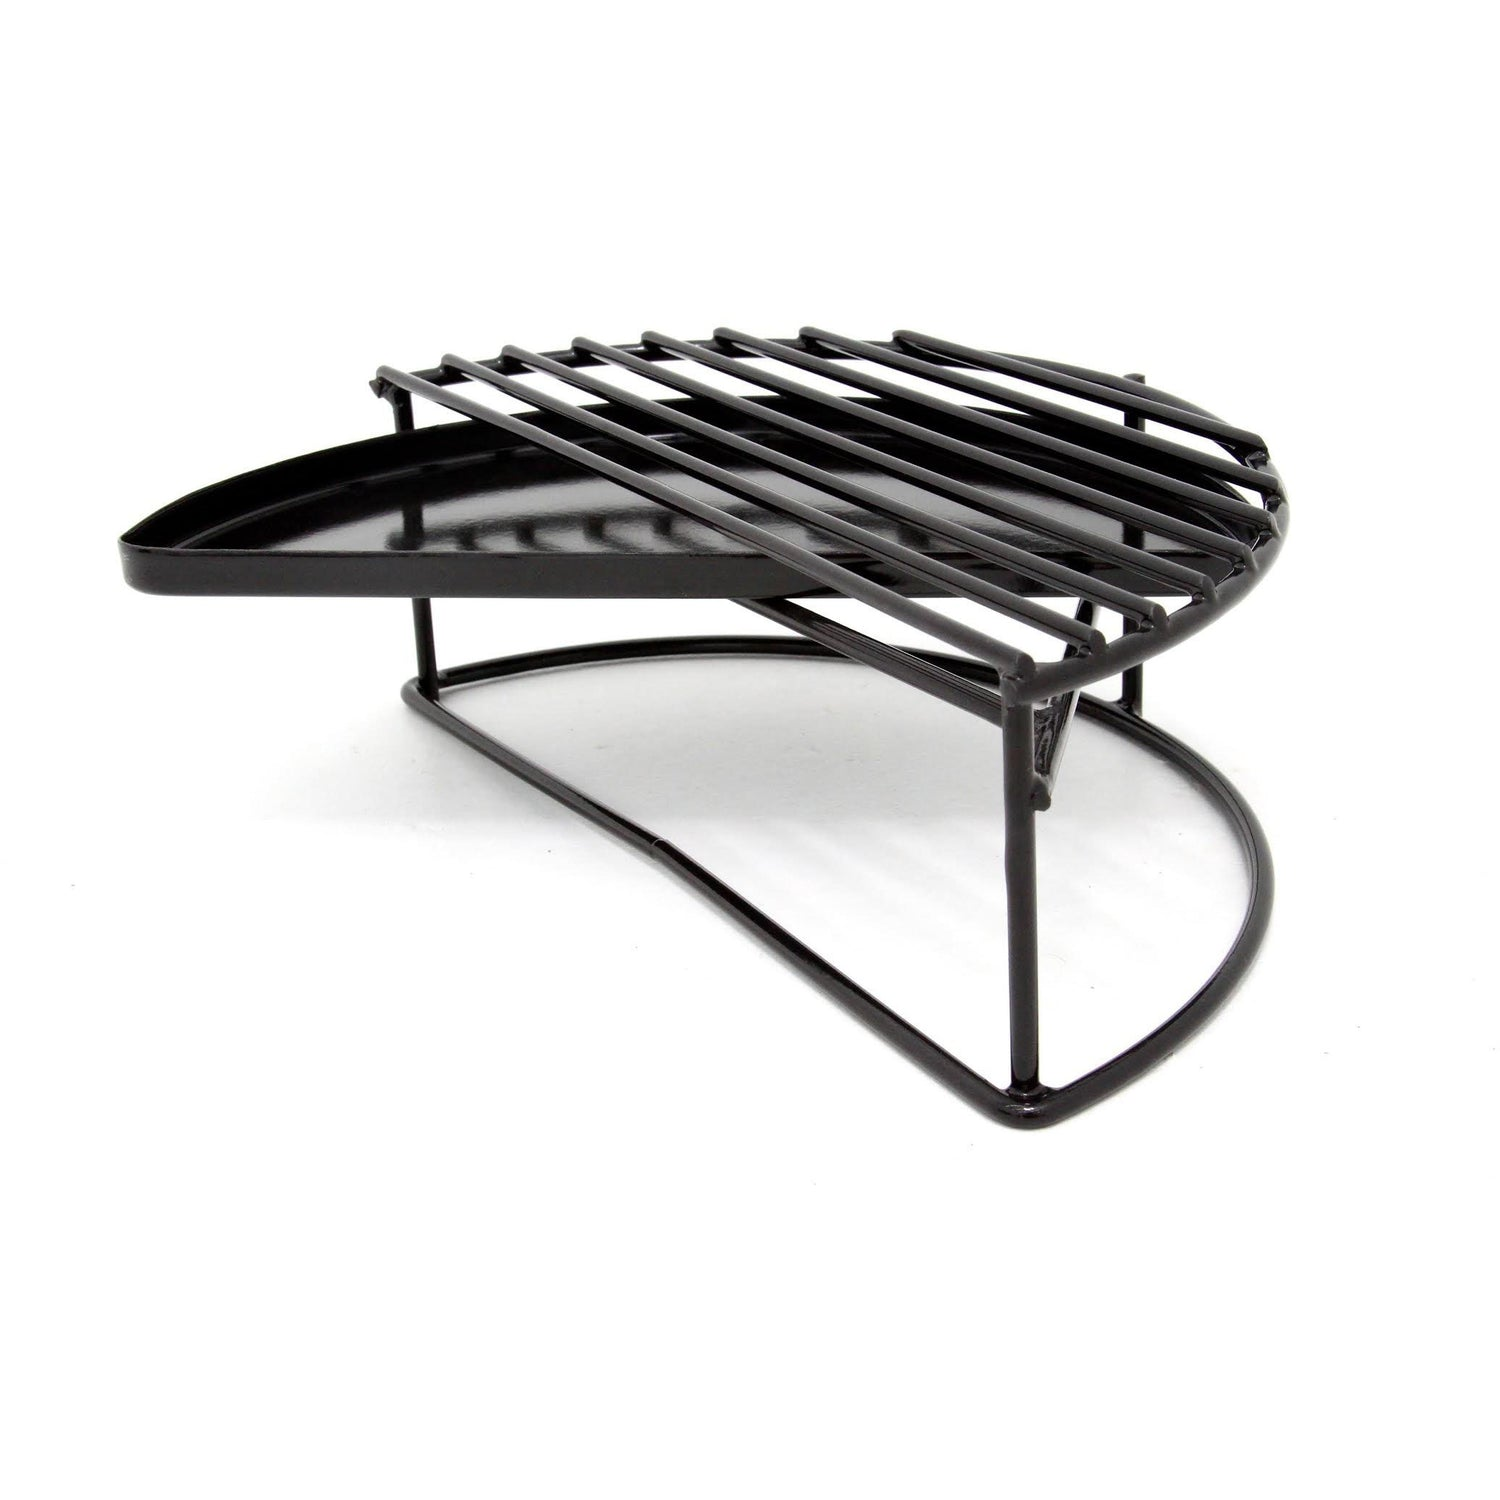 Big Green Egg Xl Extended Racks – Half Moon Raised Grids